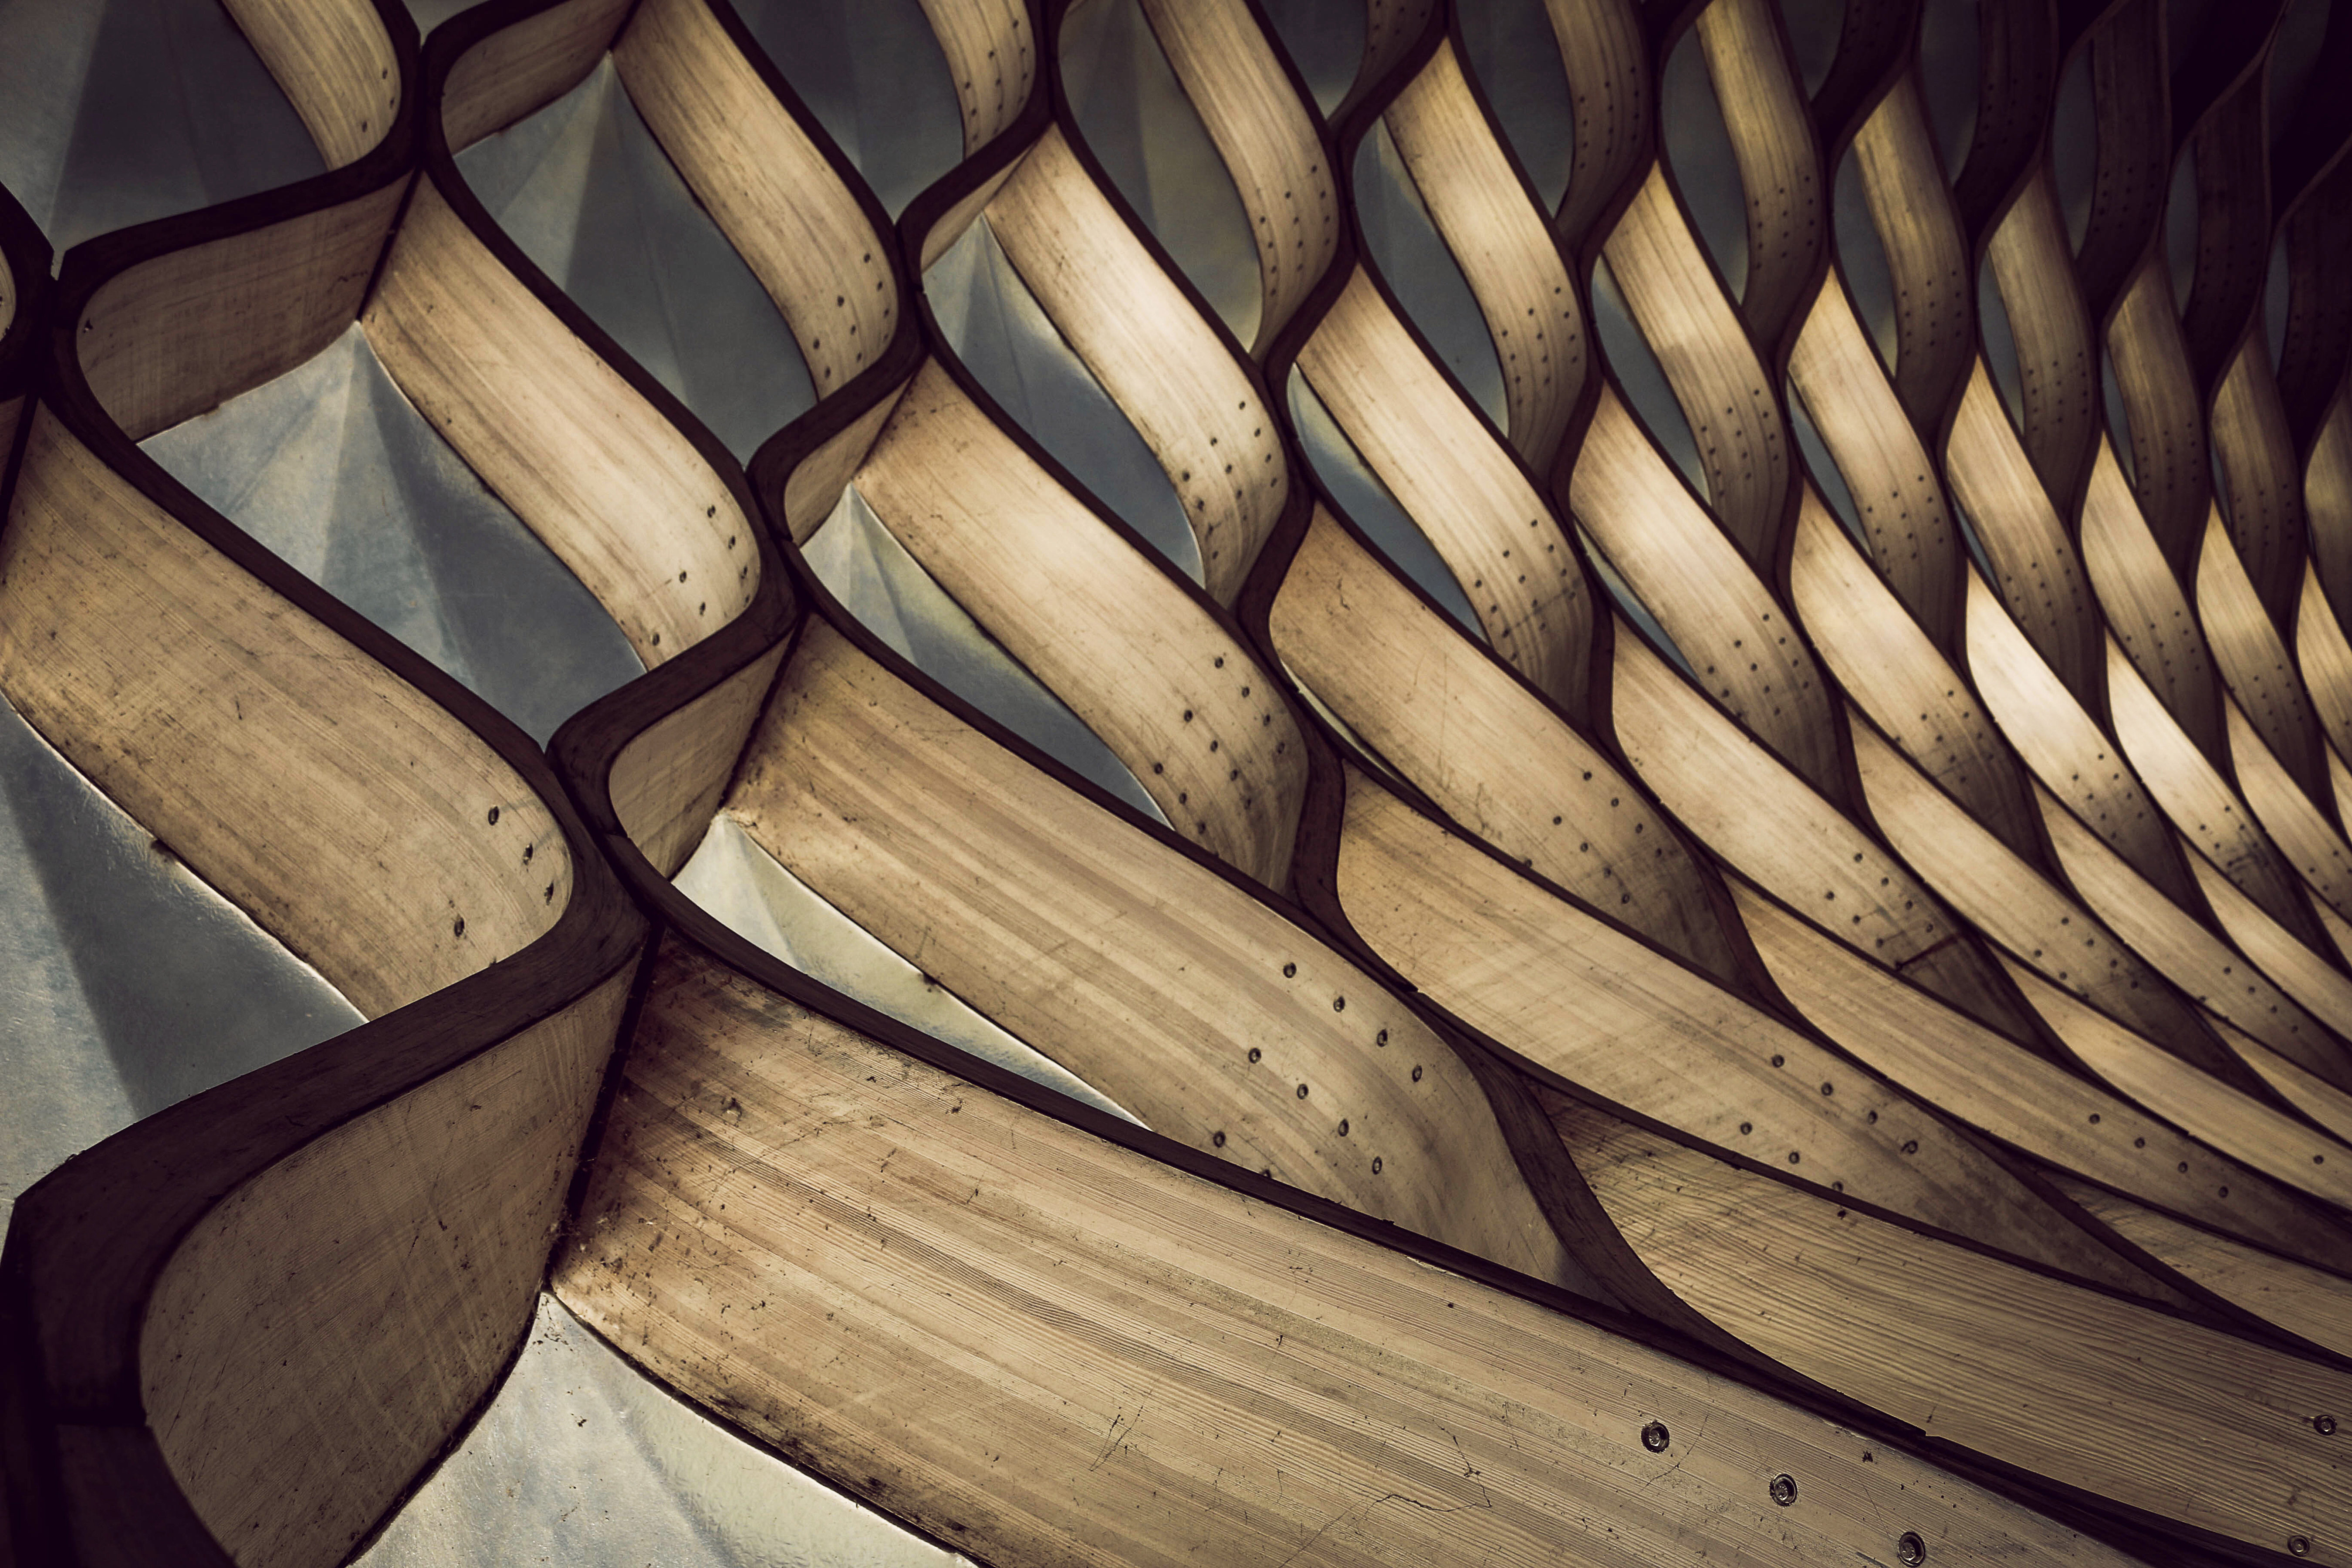 surface_architecture_shapes_114972_5400x3600